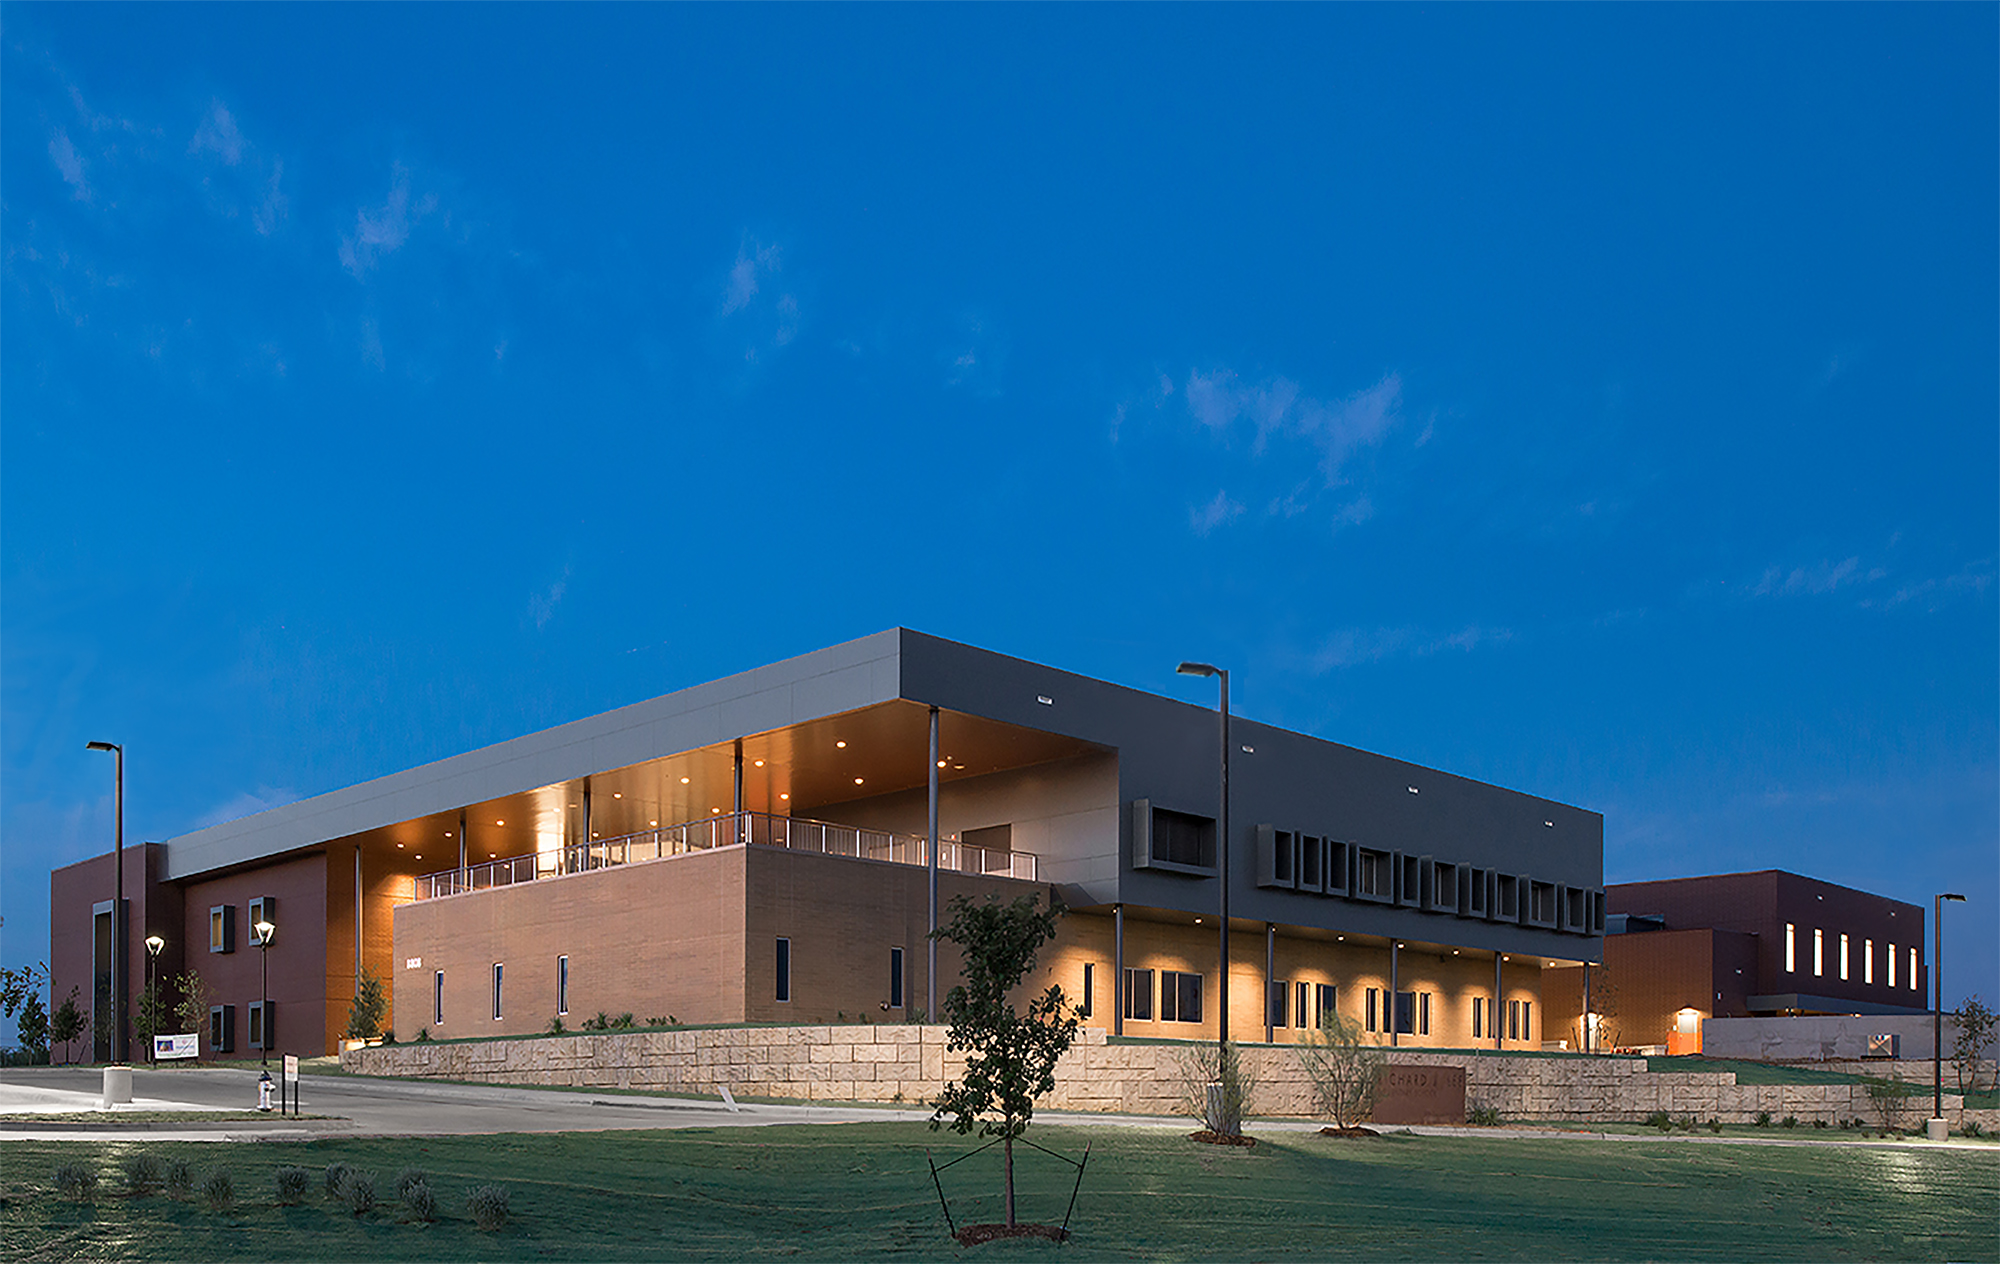 Richard J Lee Elementary School Architect Magazine